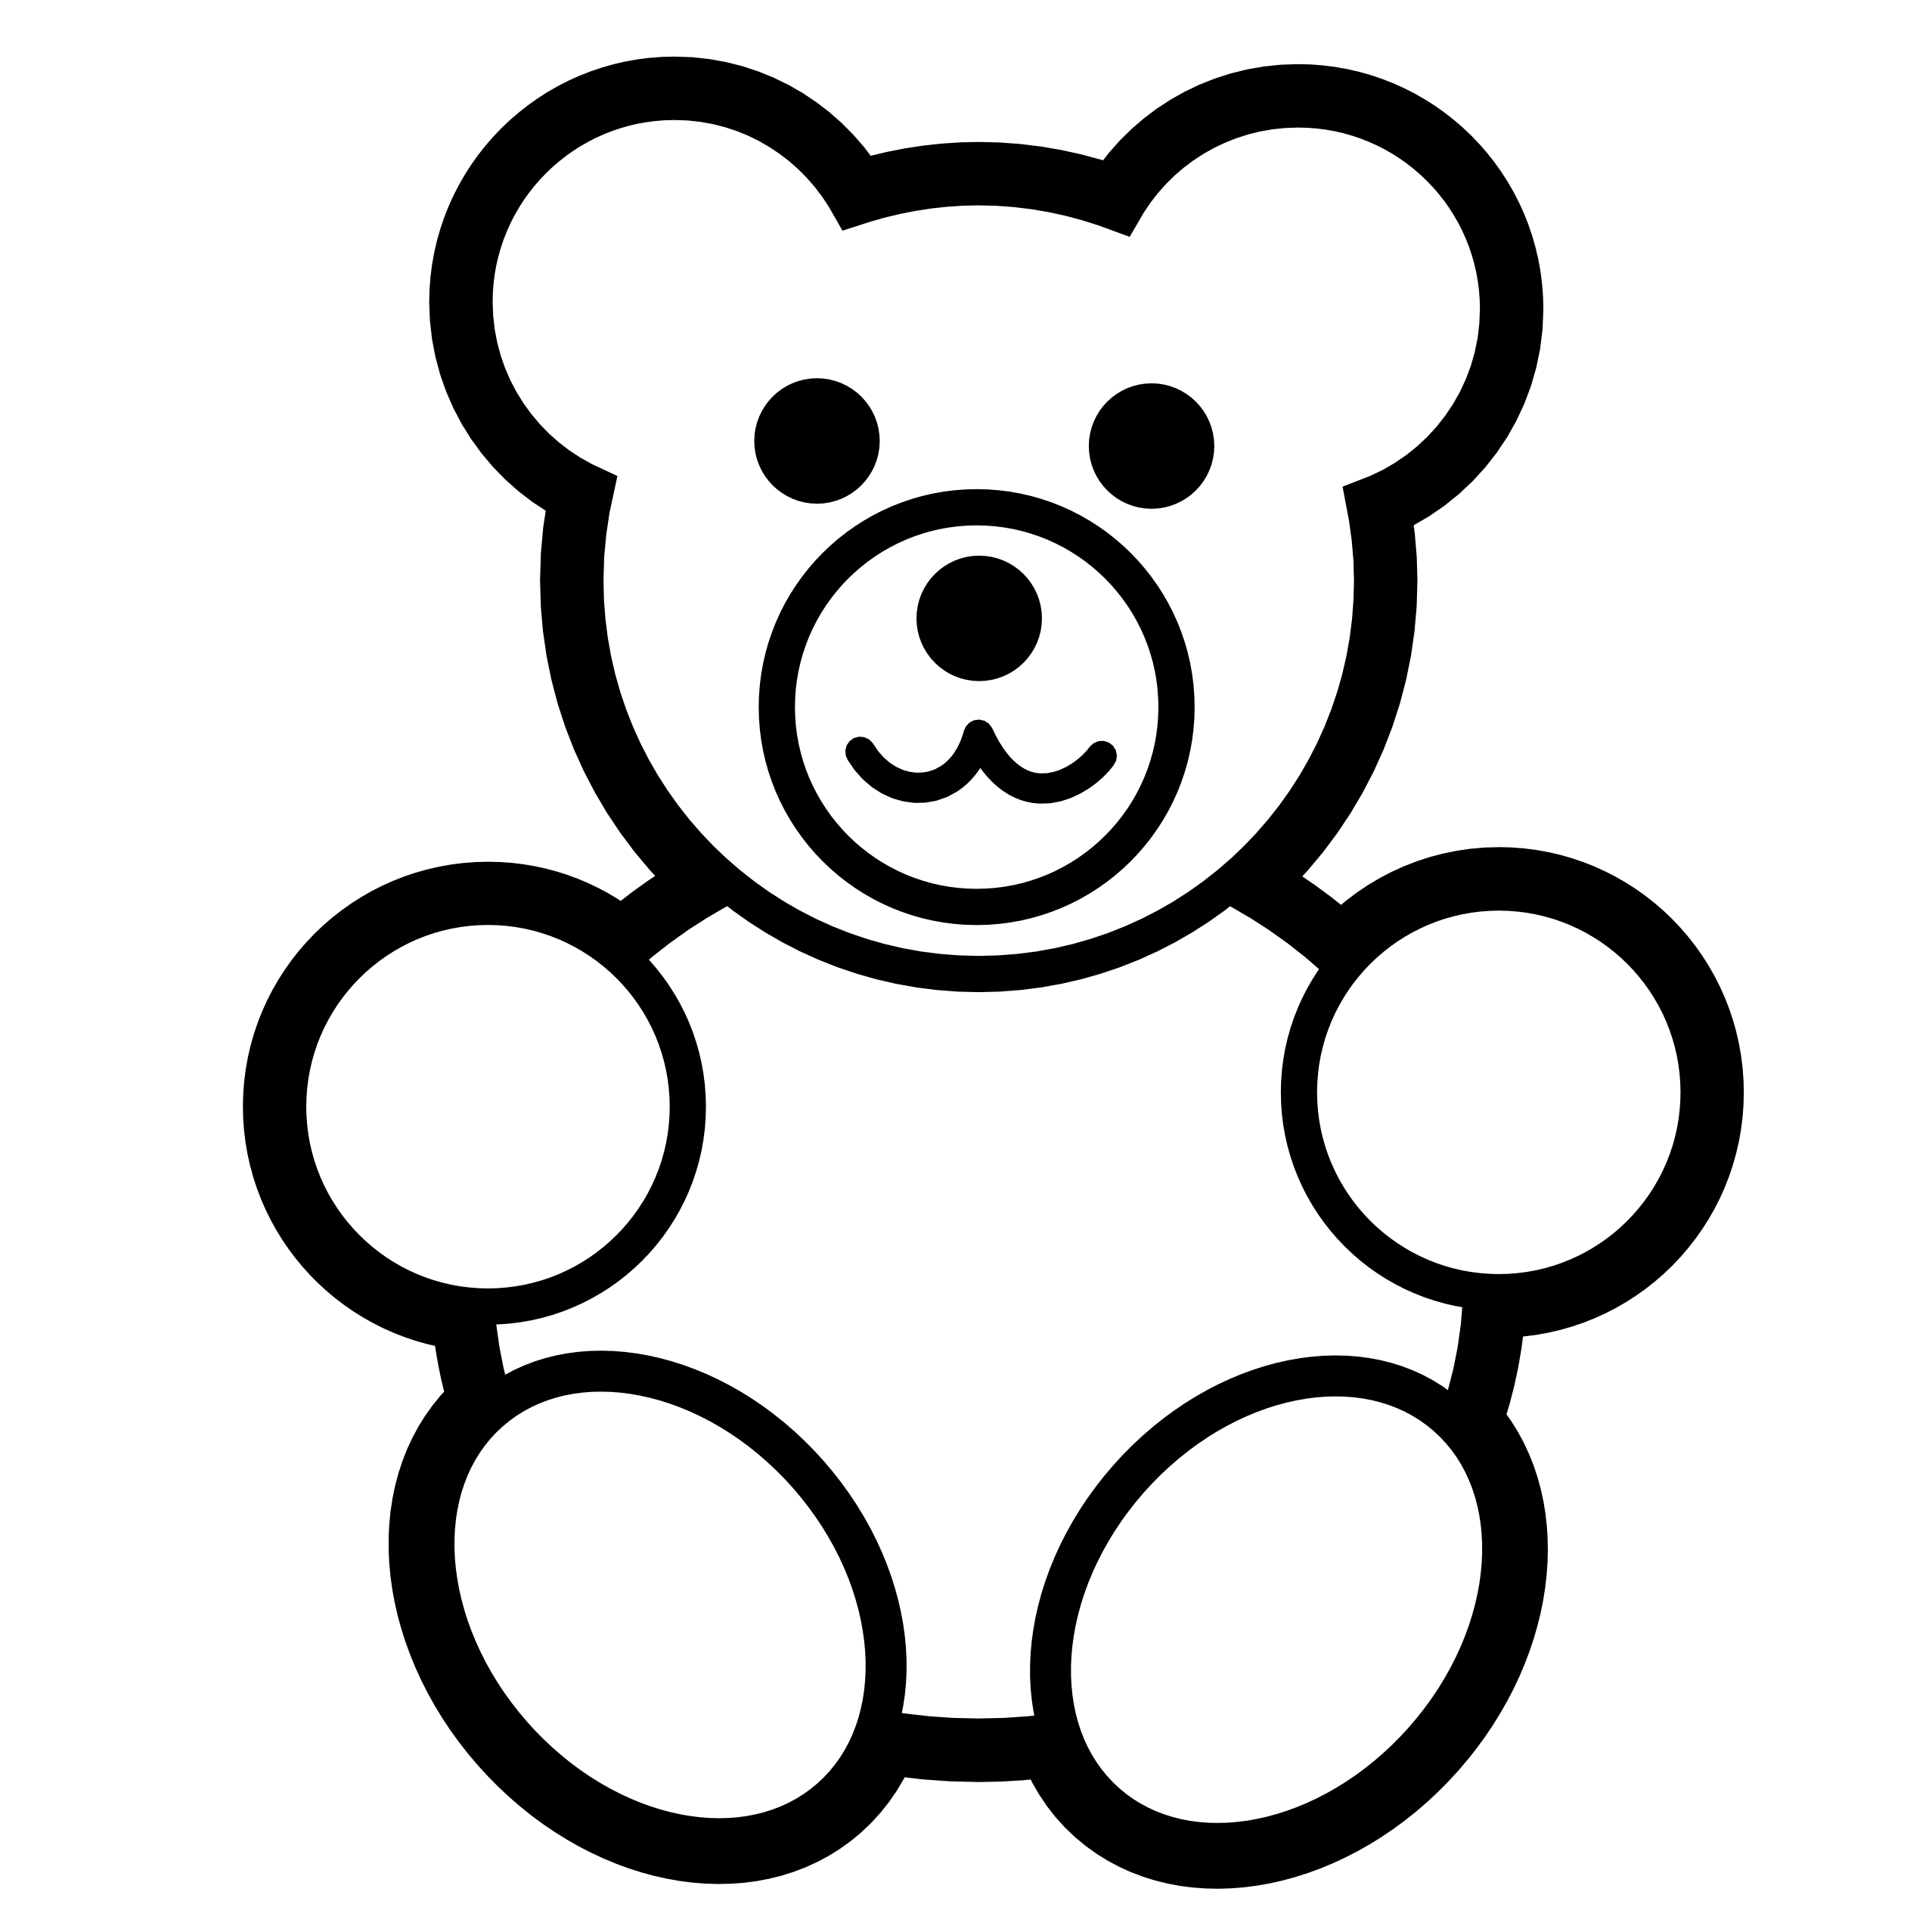 Simple Line Drawing Clip Art : Teddy bear line drawing clipart best